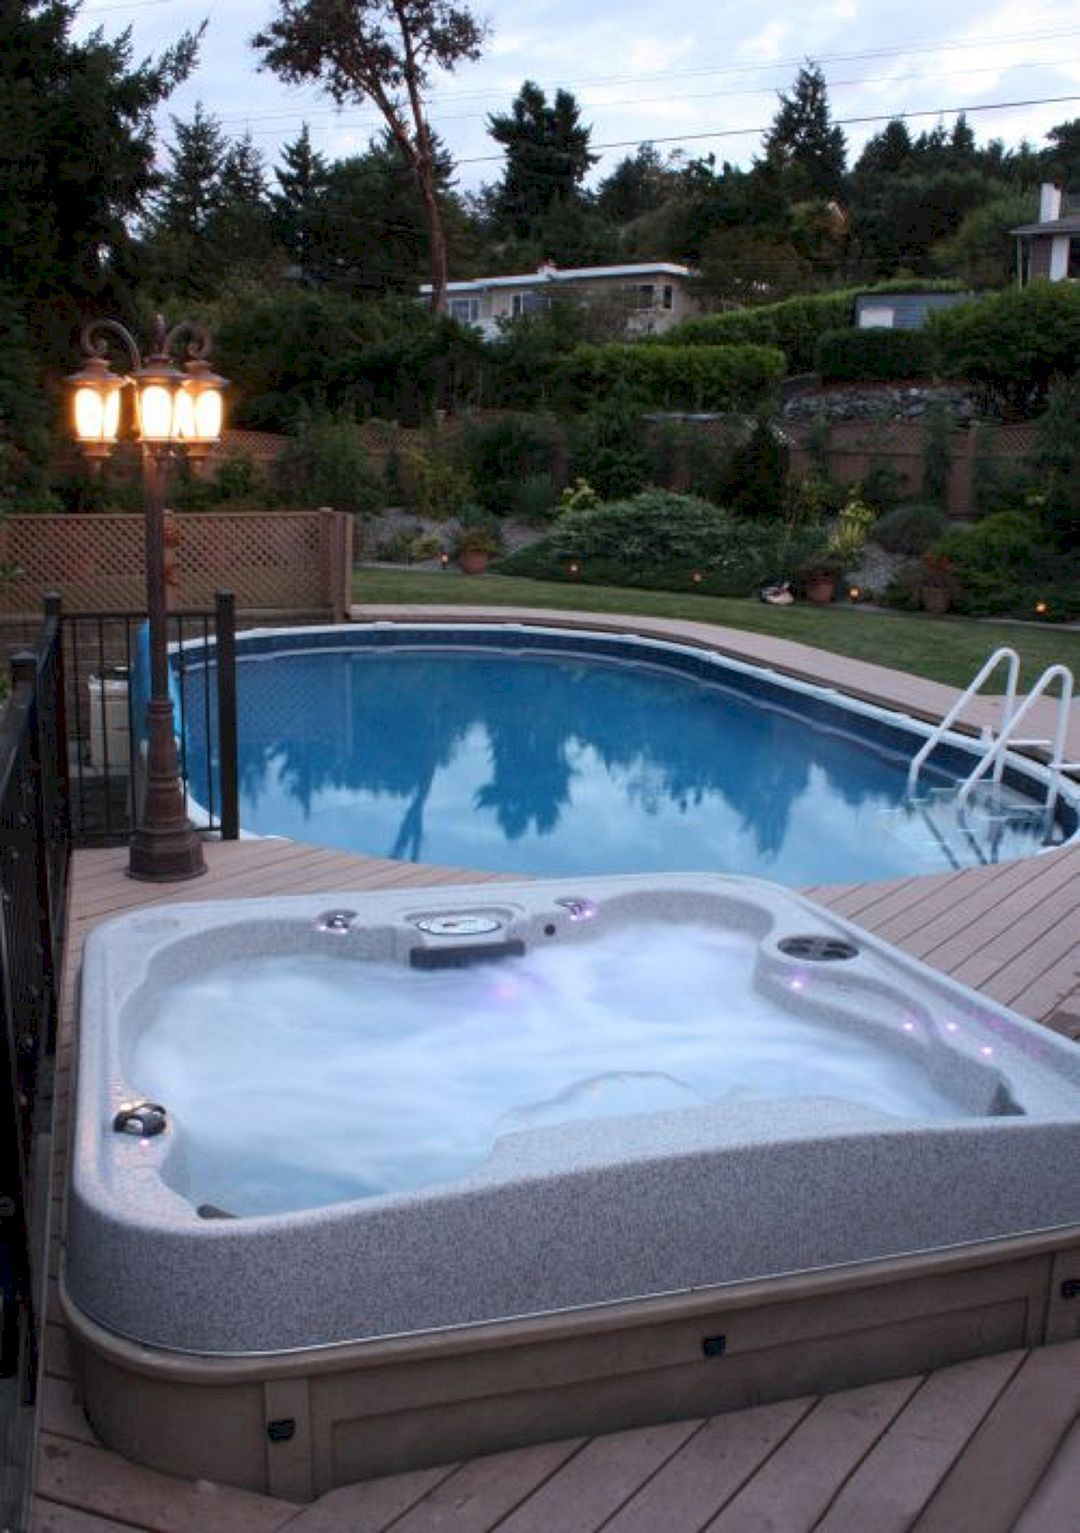 Top 24 diy above ground pool ideas on a budget backyard - Above ground pool deck ideas on a budget ...